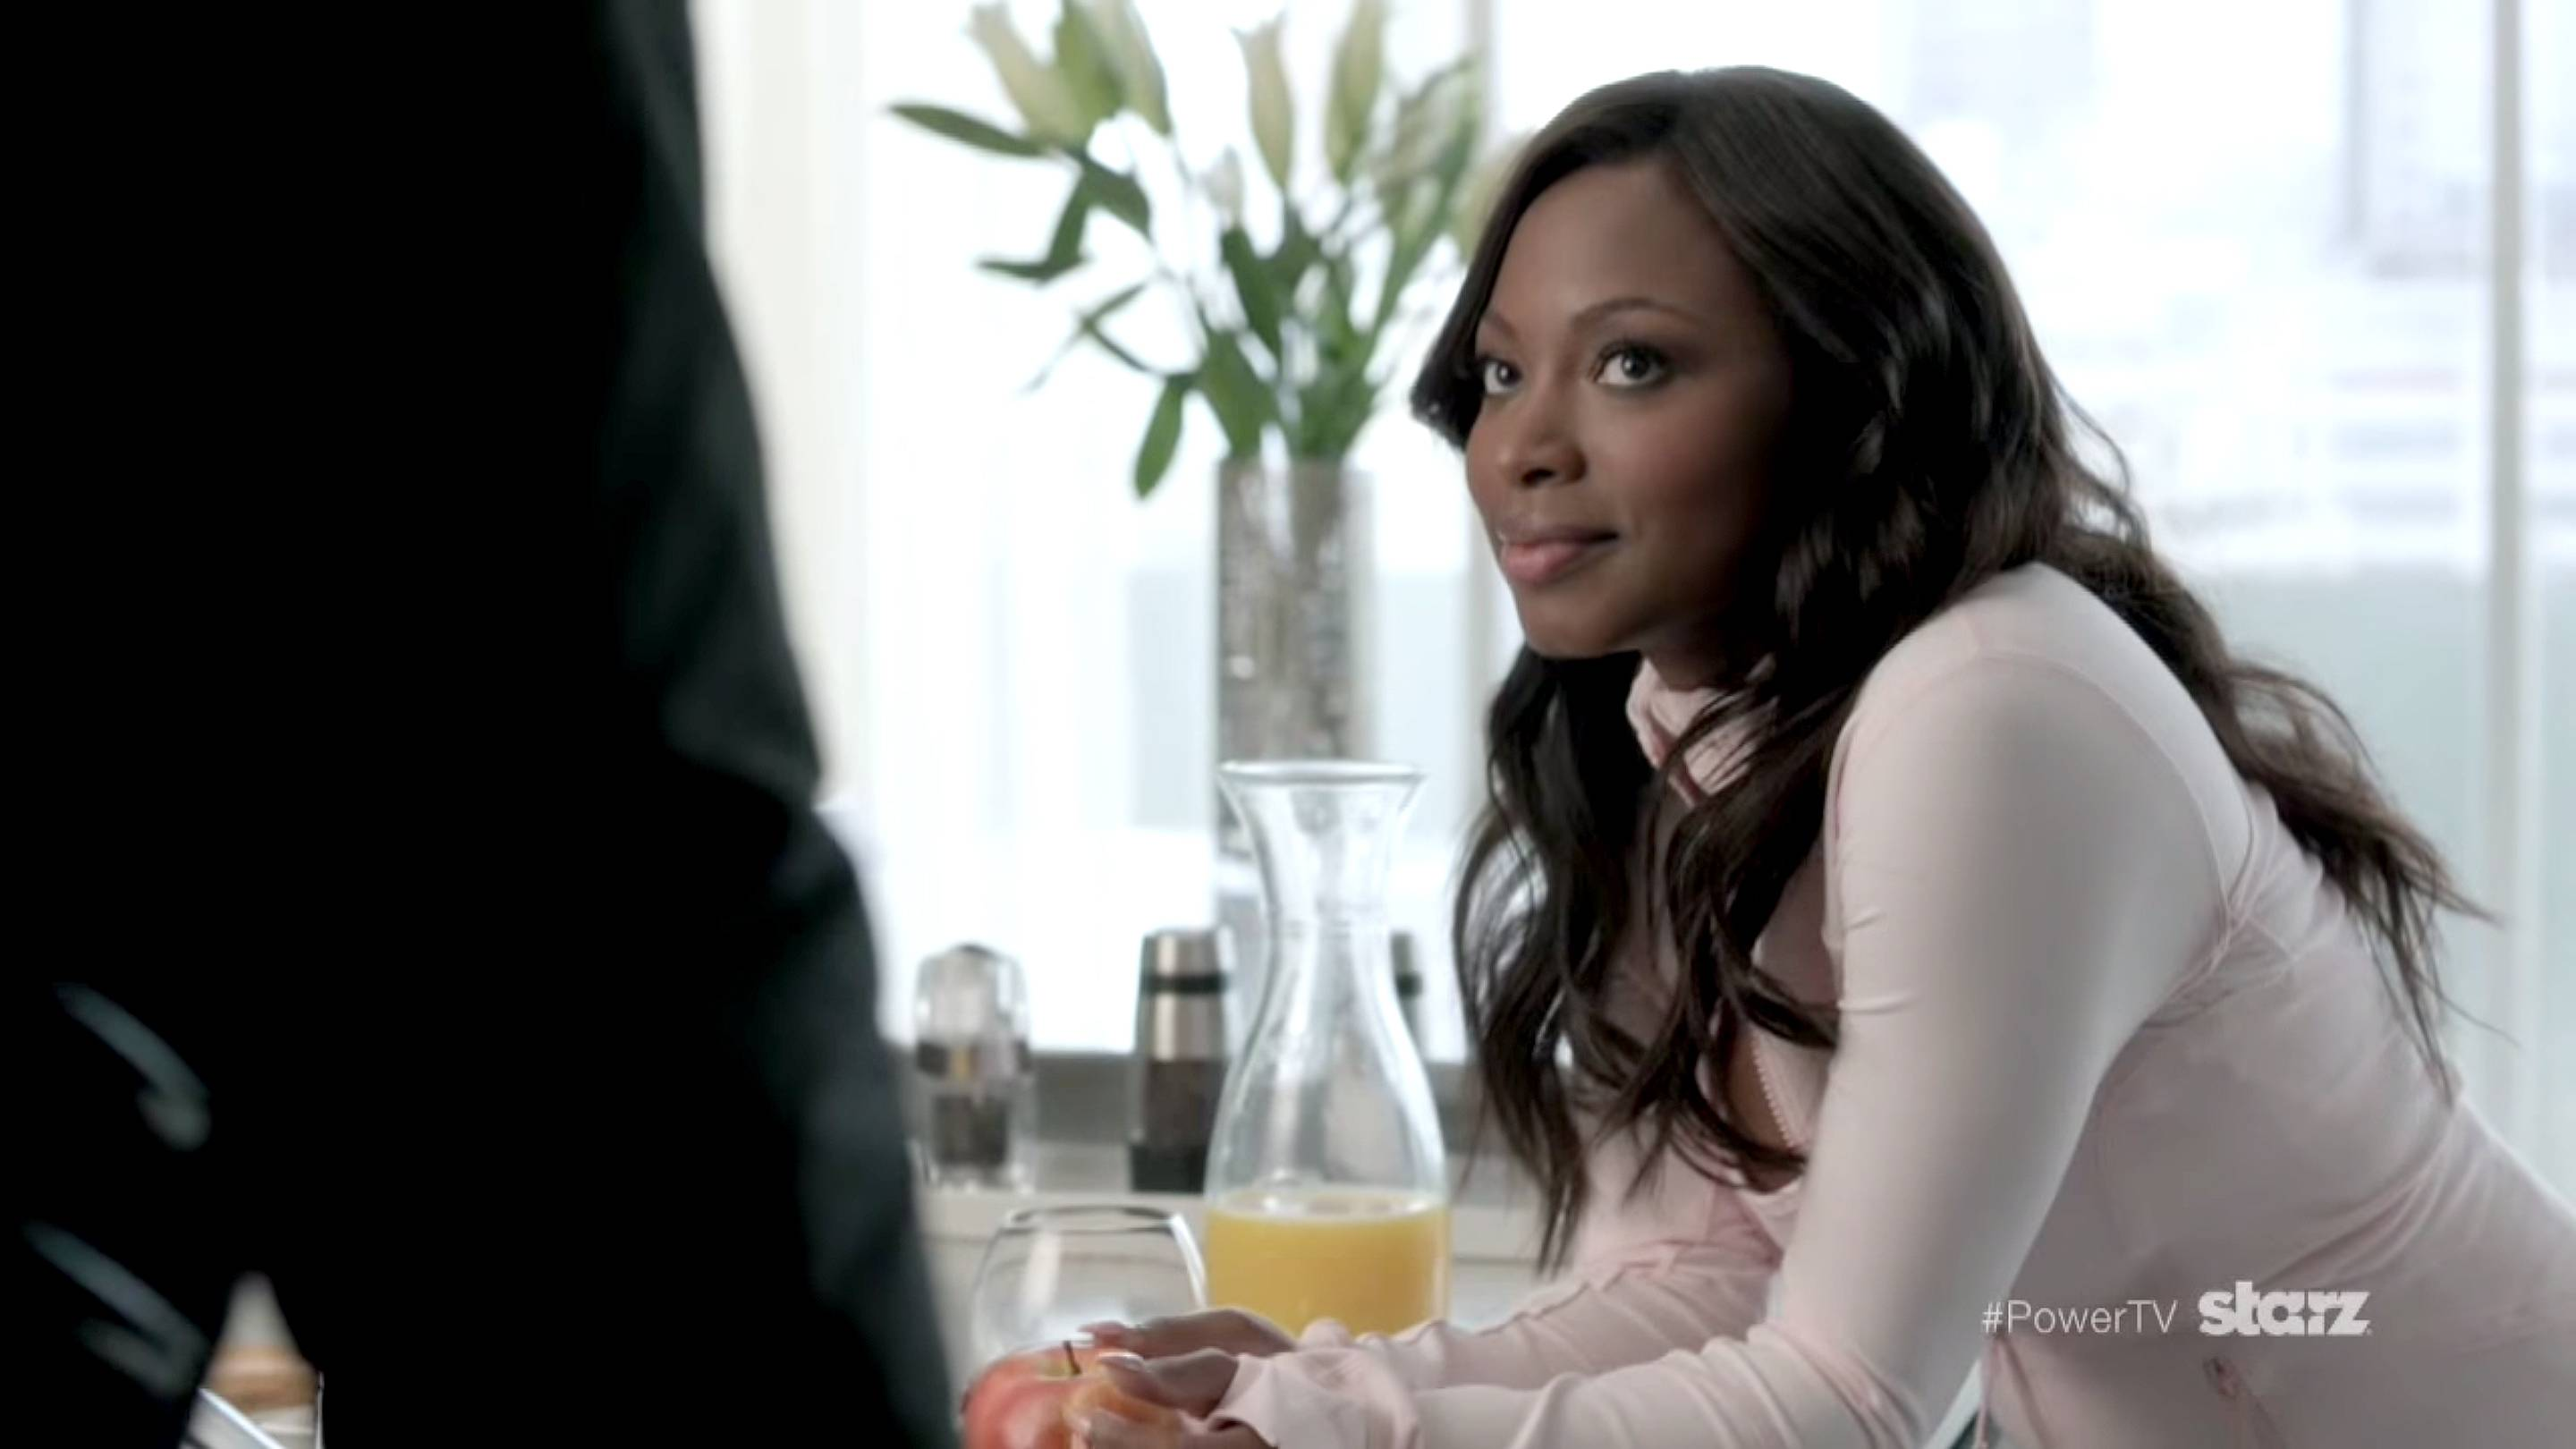 And Another One - Tasha knows the way to a man's heart (and mind). After cooking some breakfast, she asks the hard questions to get what she wants.   (Photo: Starz)